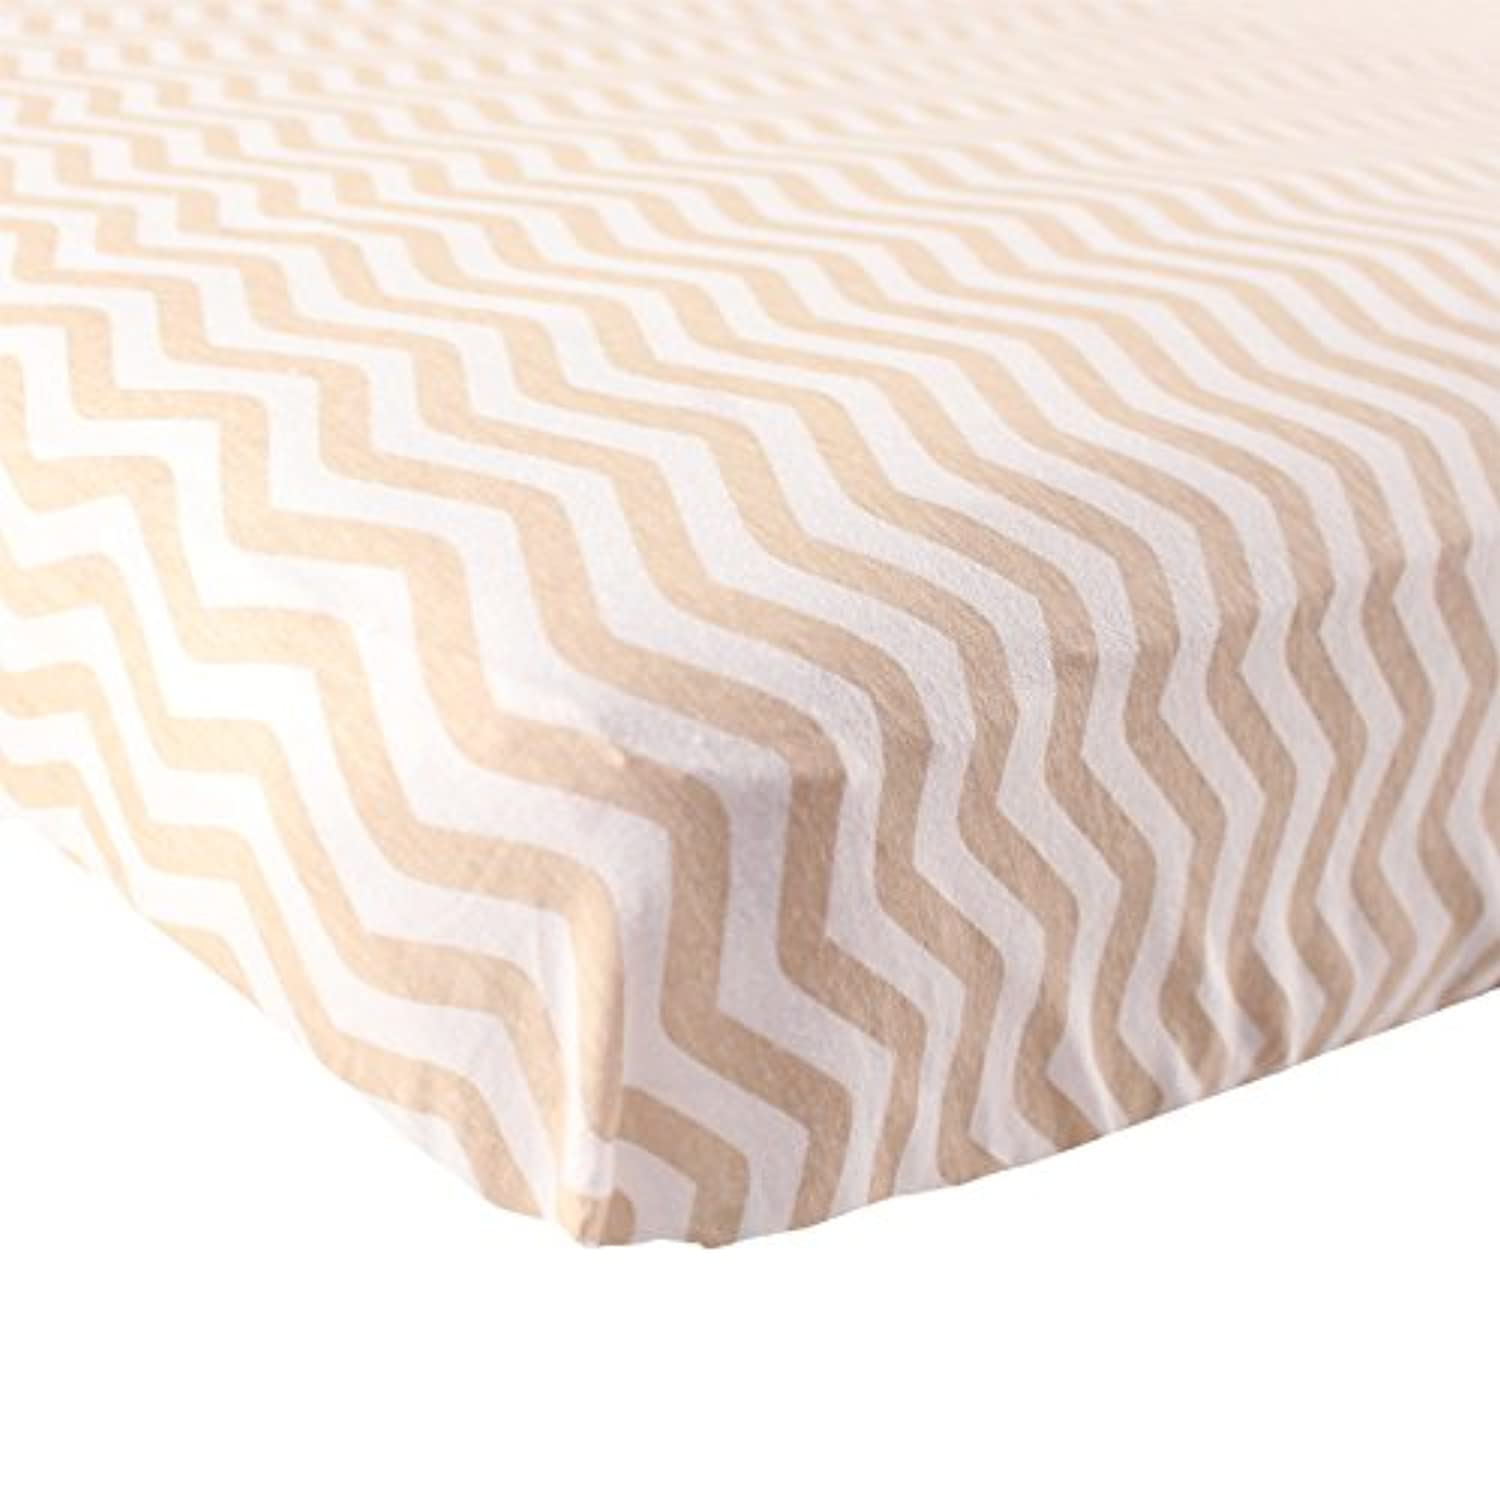 Luvable Friends Fitted Knit Cotton Crib Sheet, Tan Chevron, One Size by Luvable Friends